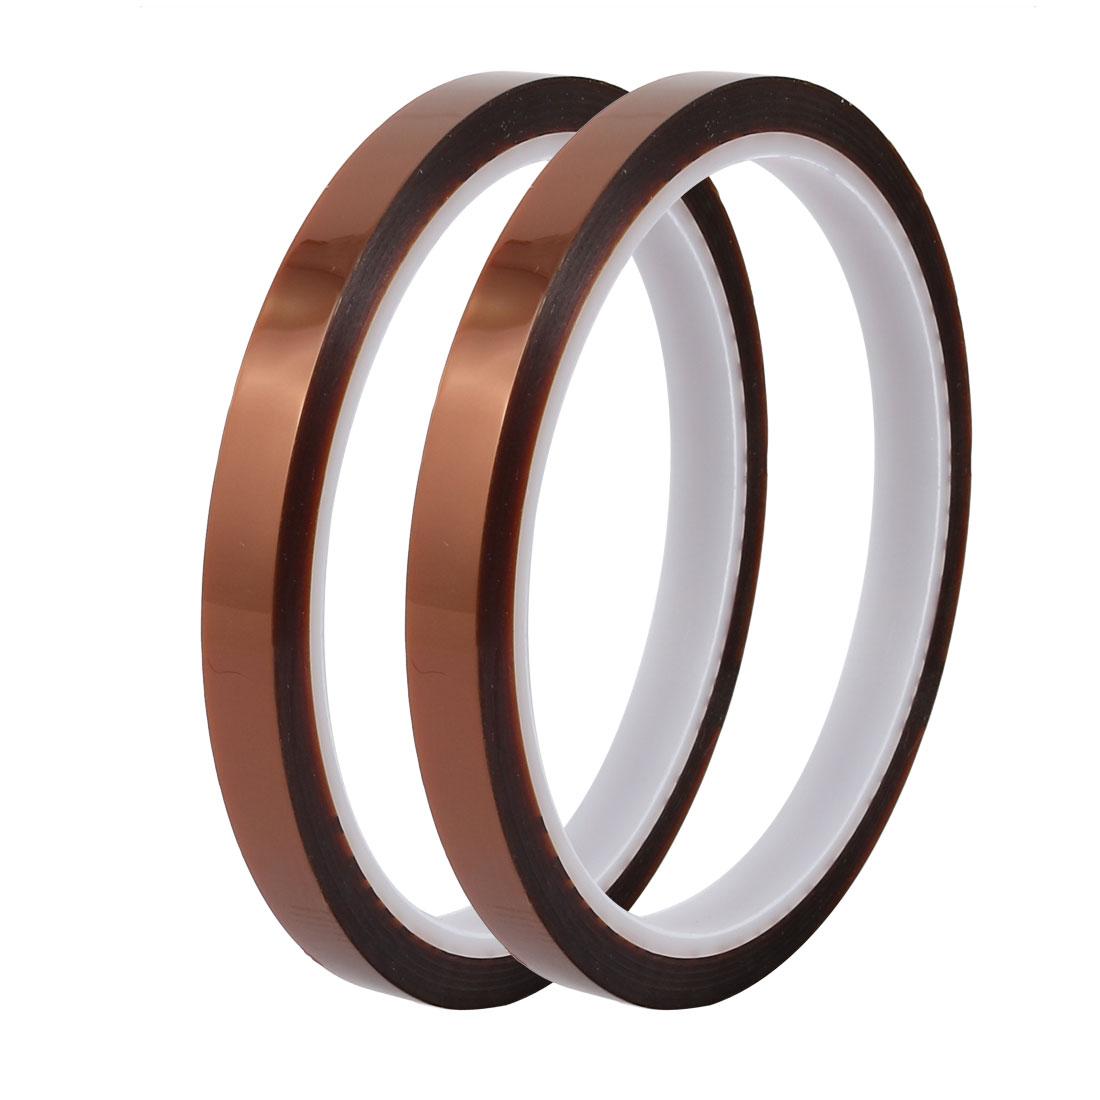 Unique Bargains 2pcs 8mm Wide 30yd Long Thermostability Insulation Polyimide Film Adhesive Tape